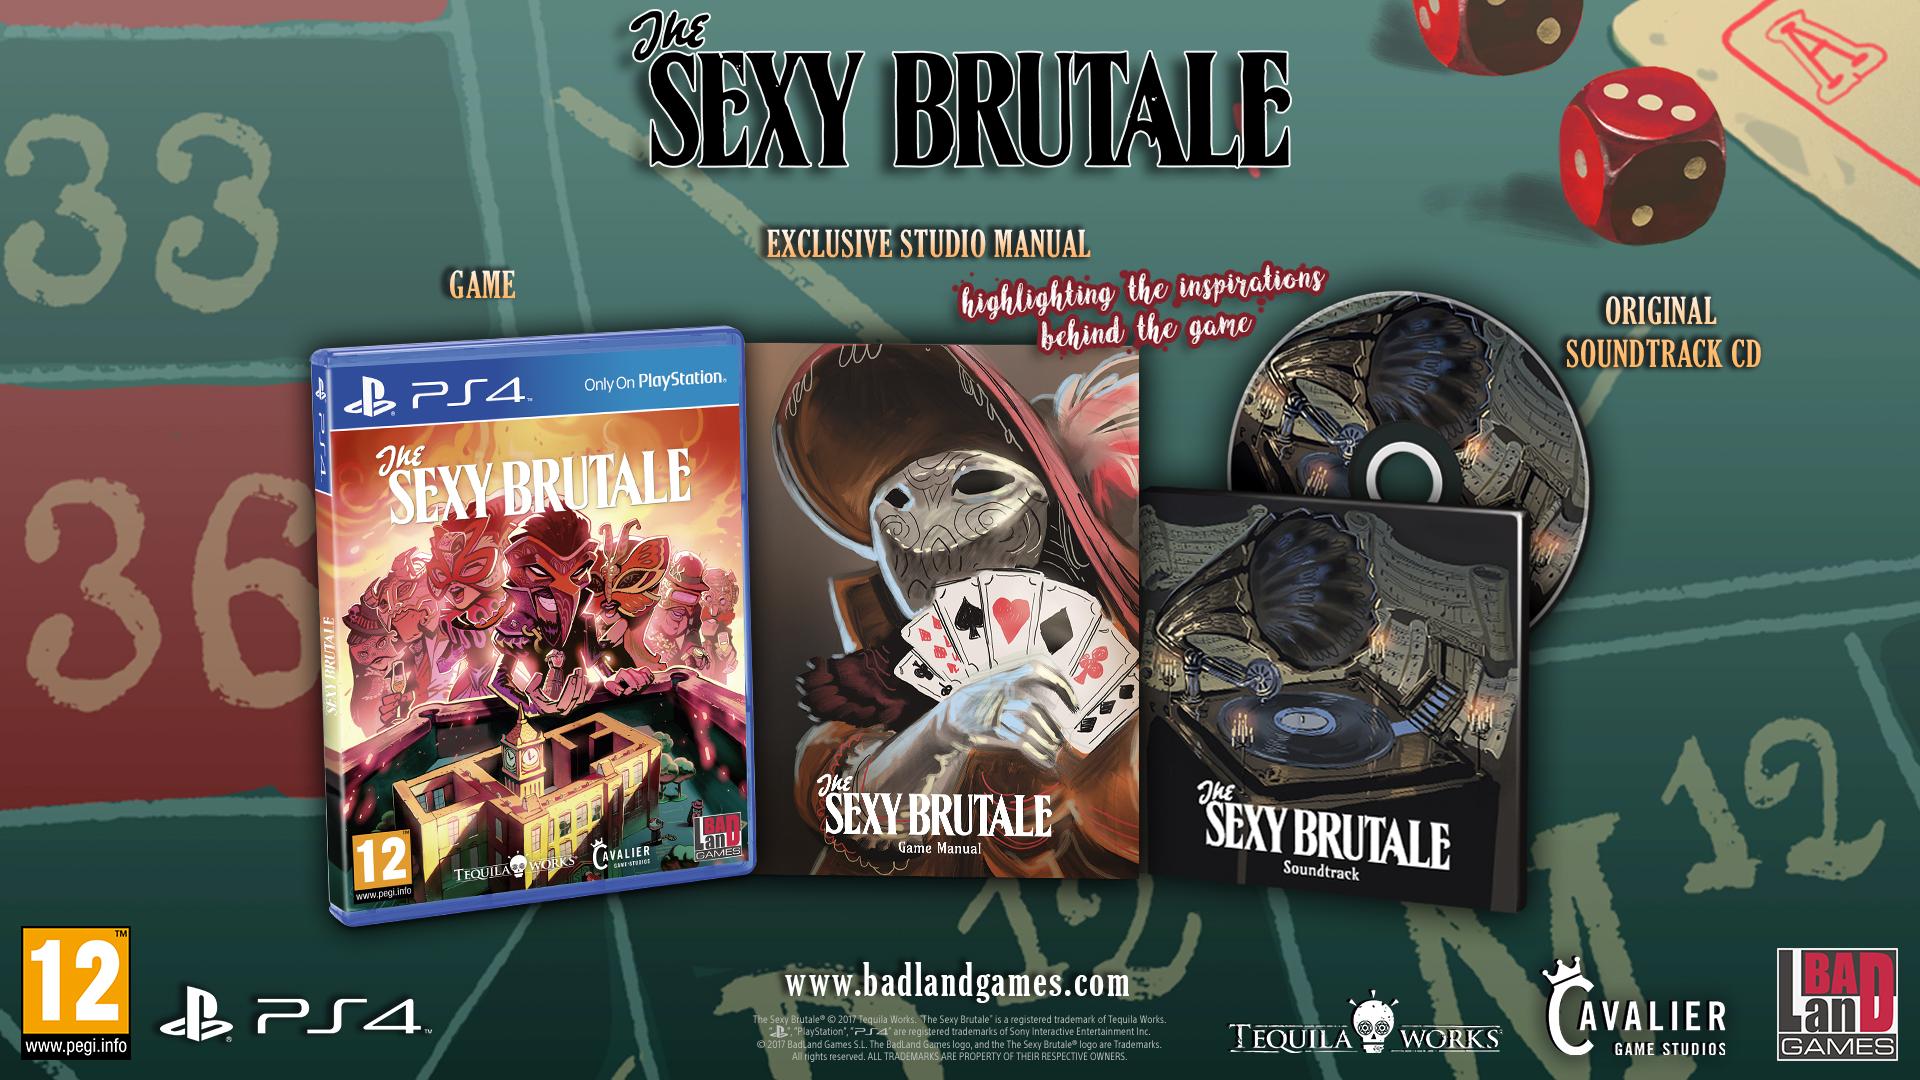 THE_SEXY_BRUTALE_PS4_MOCK-UP ENG_EU TW